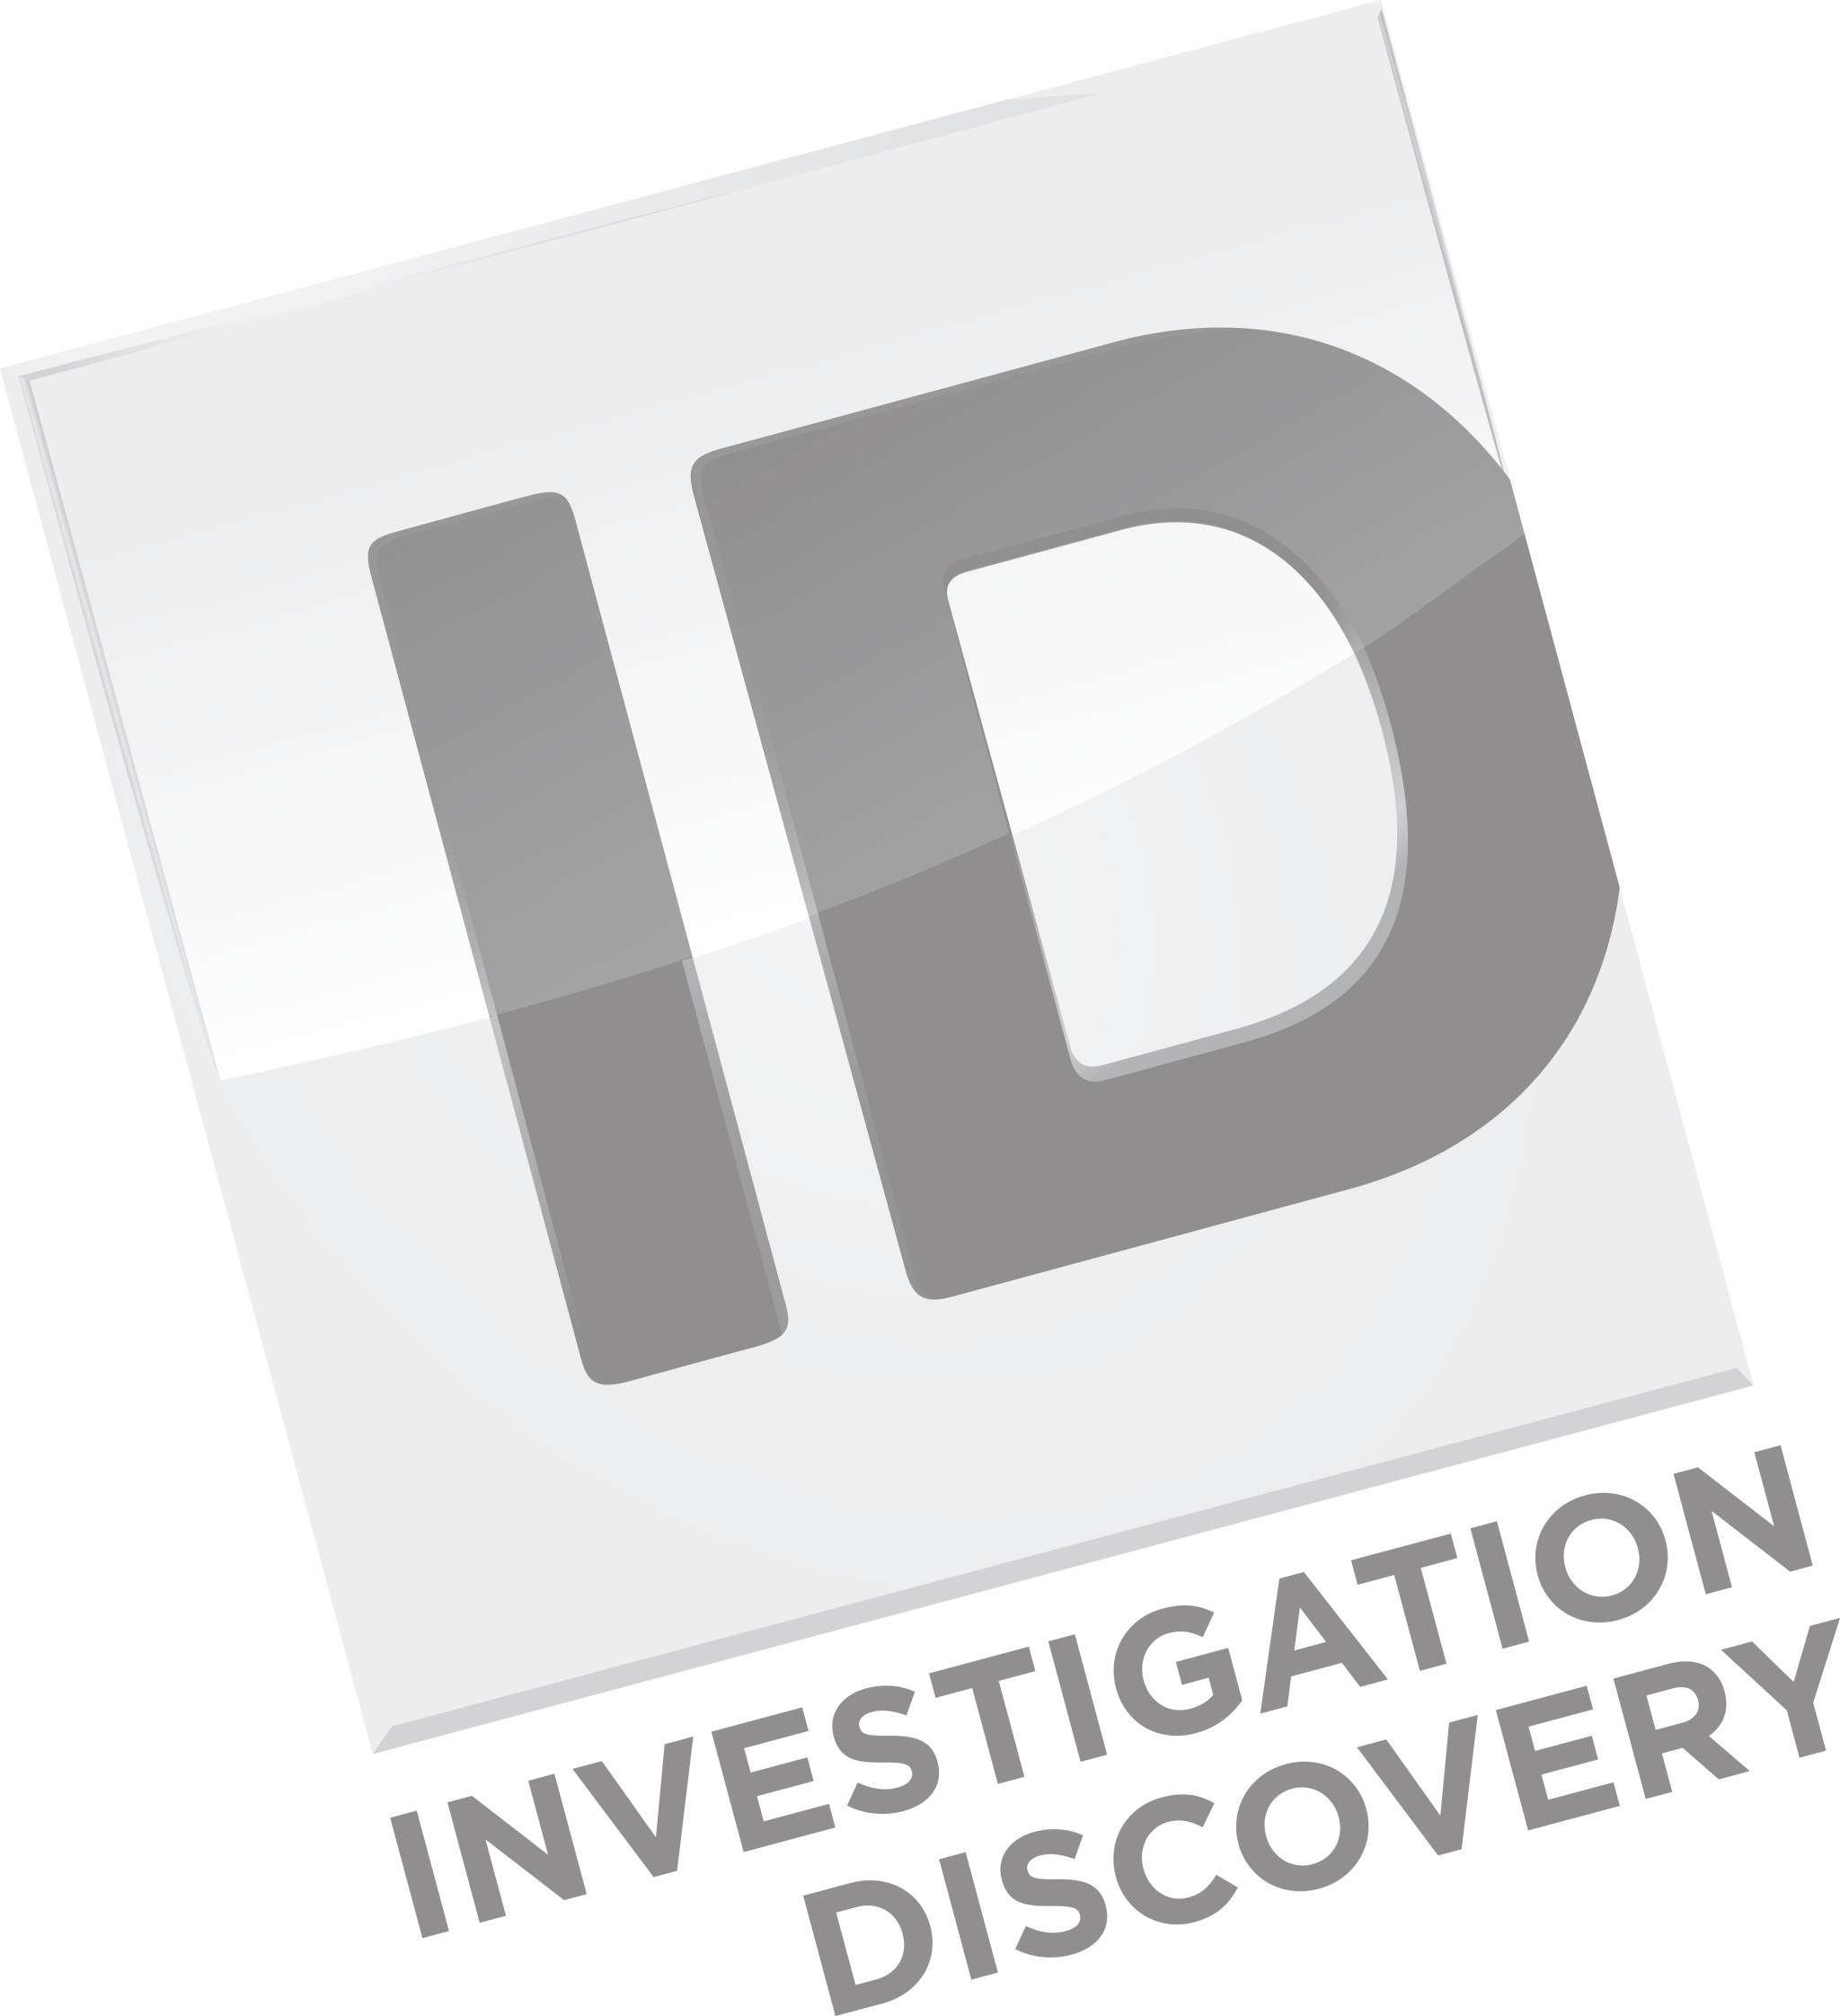 logo_discovery id.png